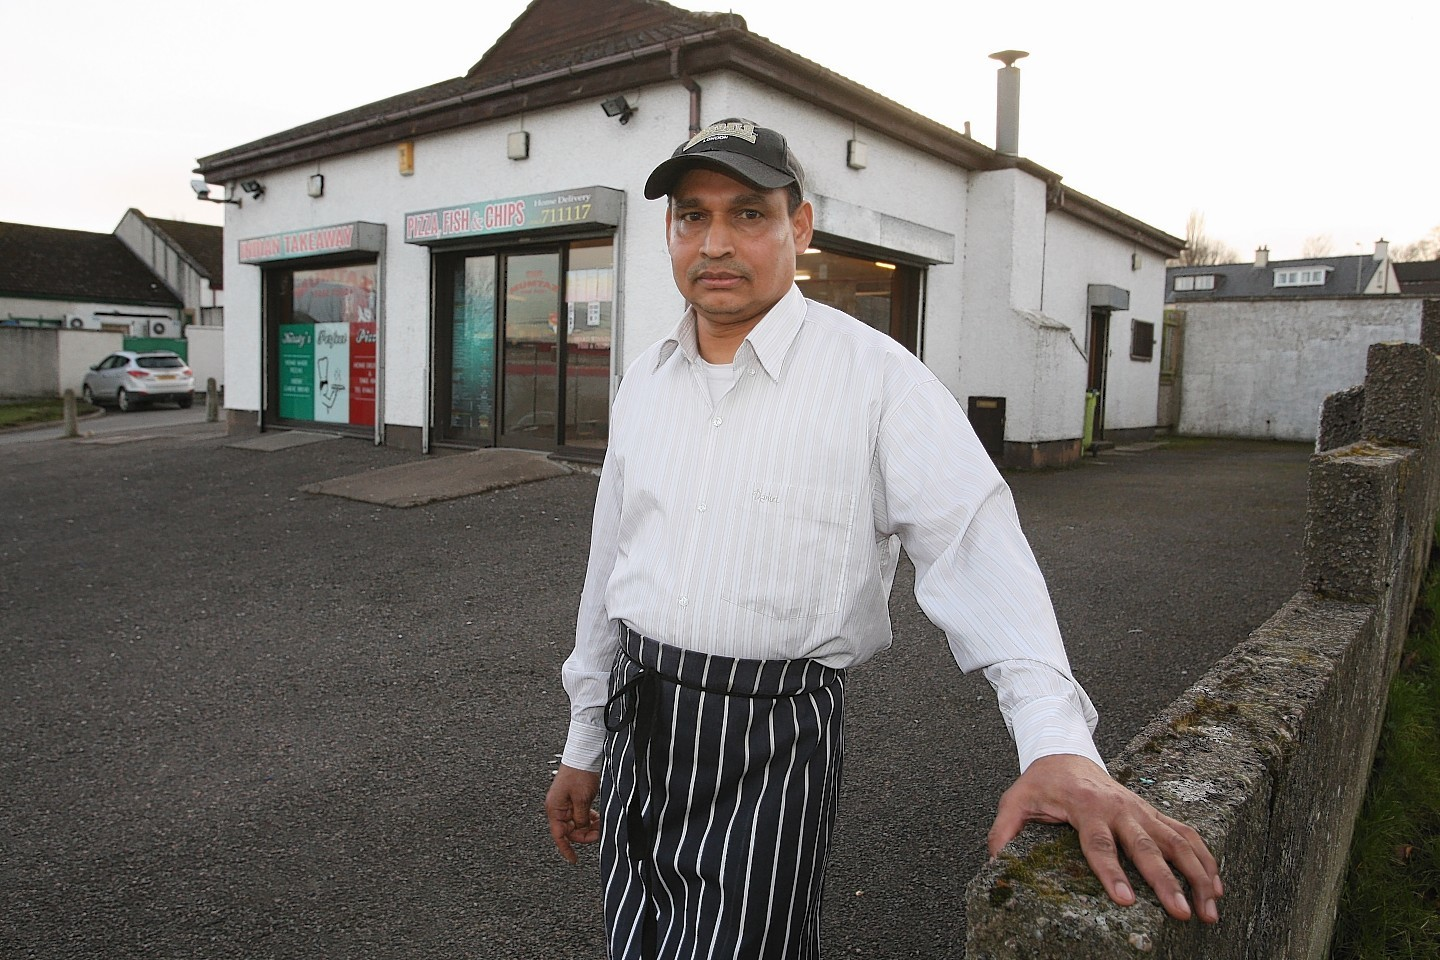 Syead Bhuiyan, who owns the Mumtaz take-away in Kinmylies,